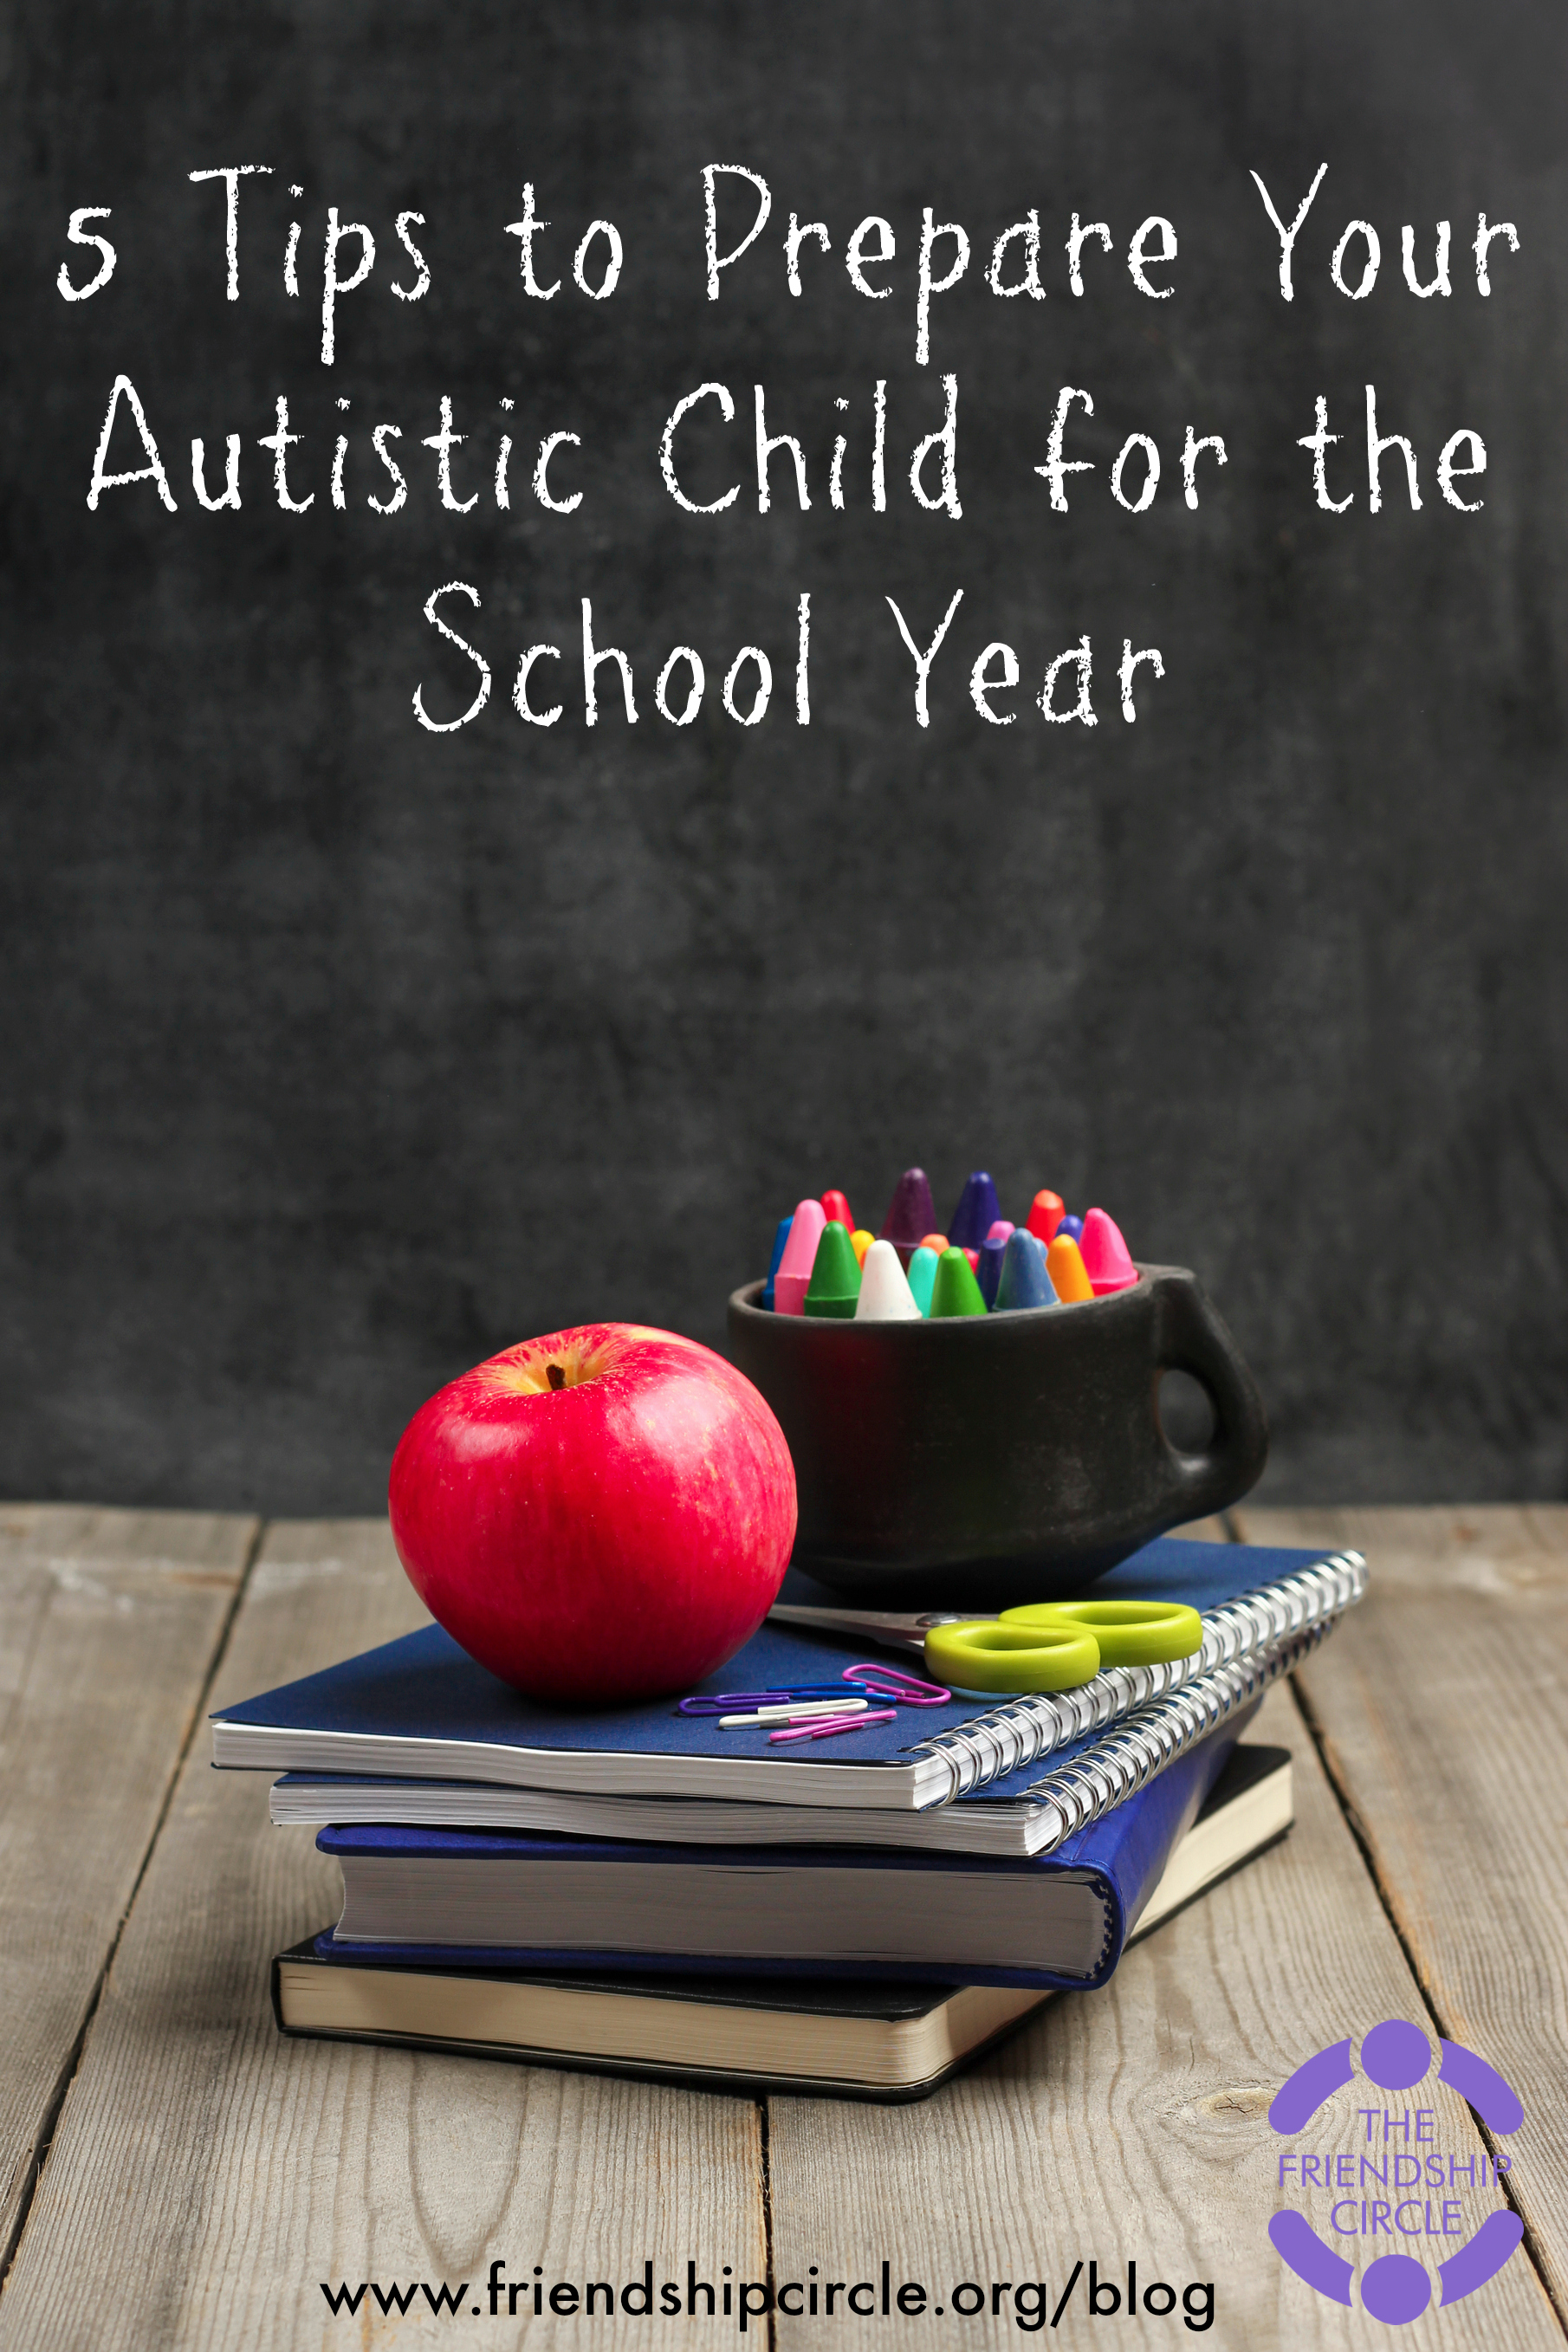 5 Tips to Prepare Your Autistic Child for the School Year